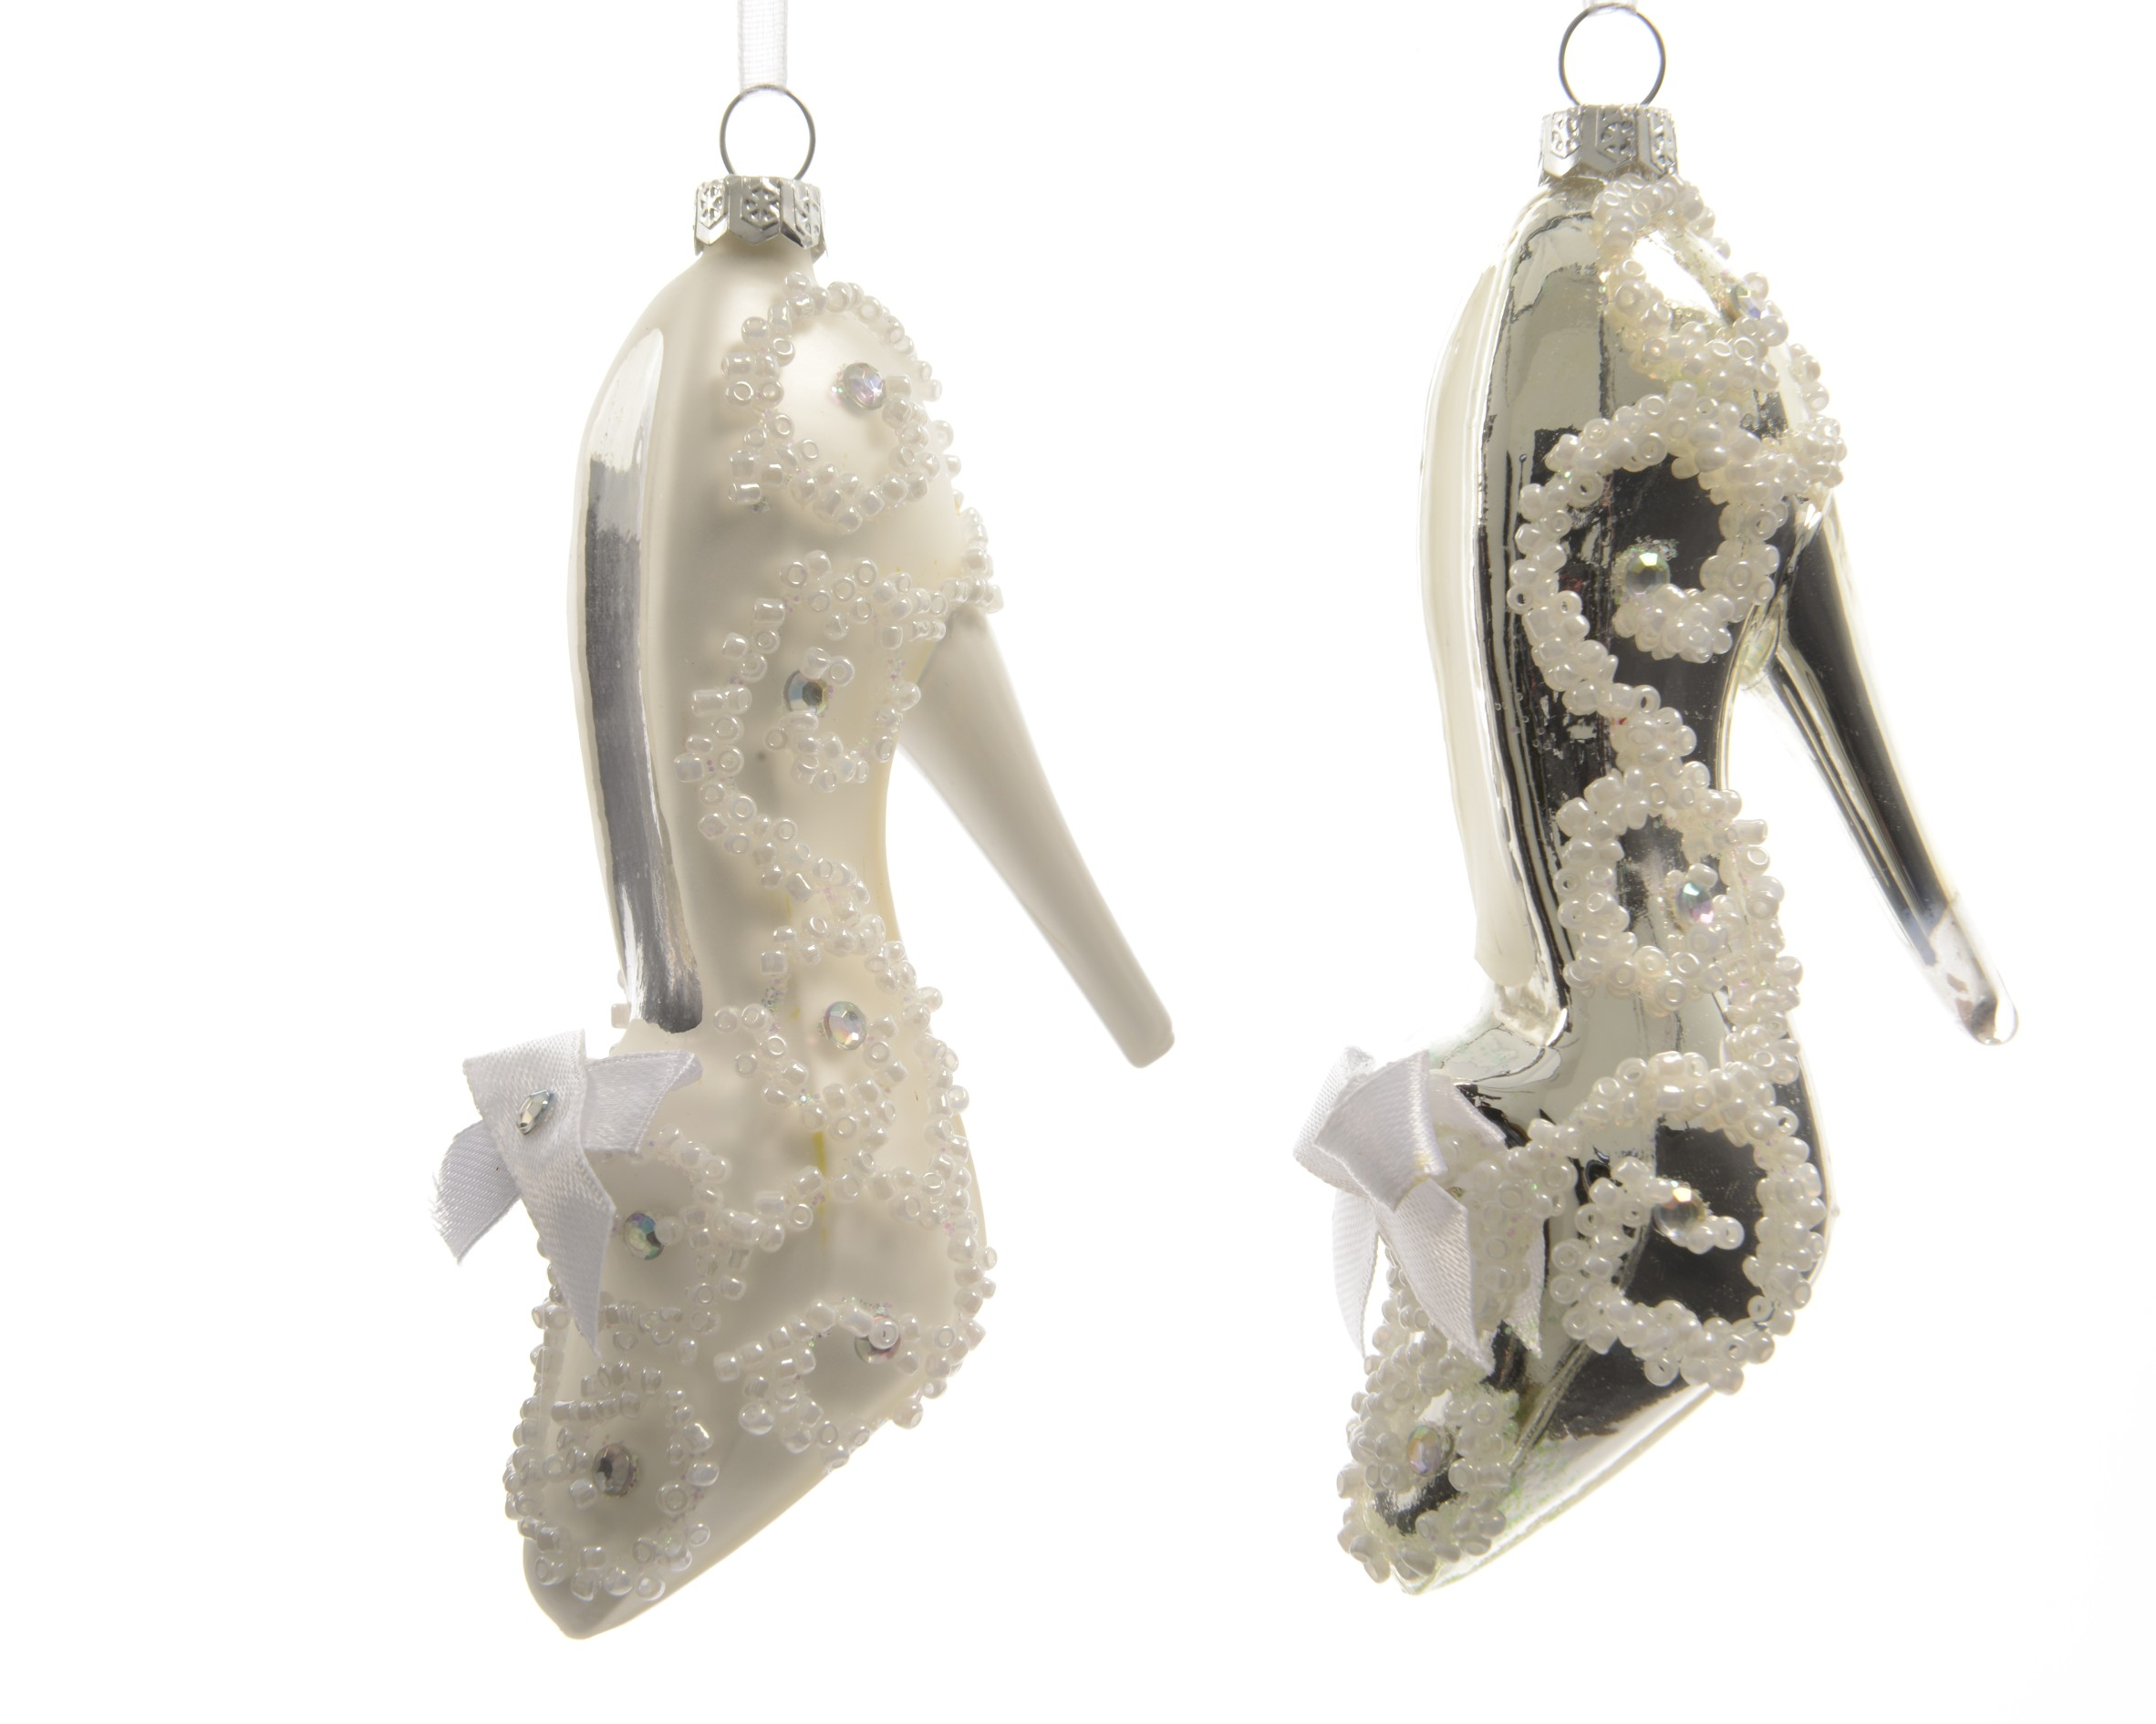 6 GLASS High Heel Shoe Christmas Tree Baubles Hanging